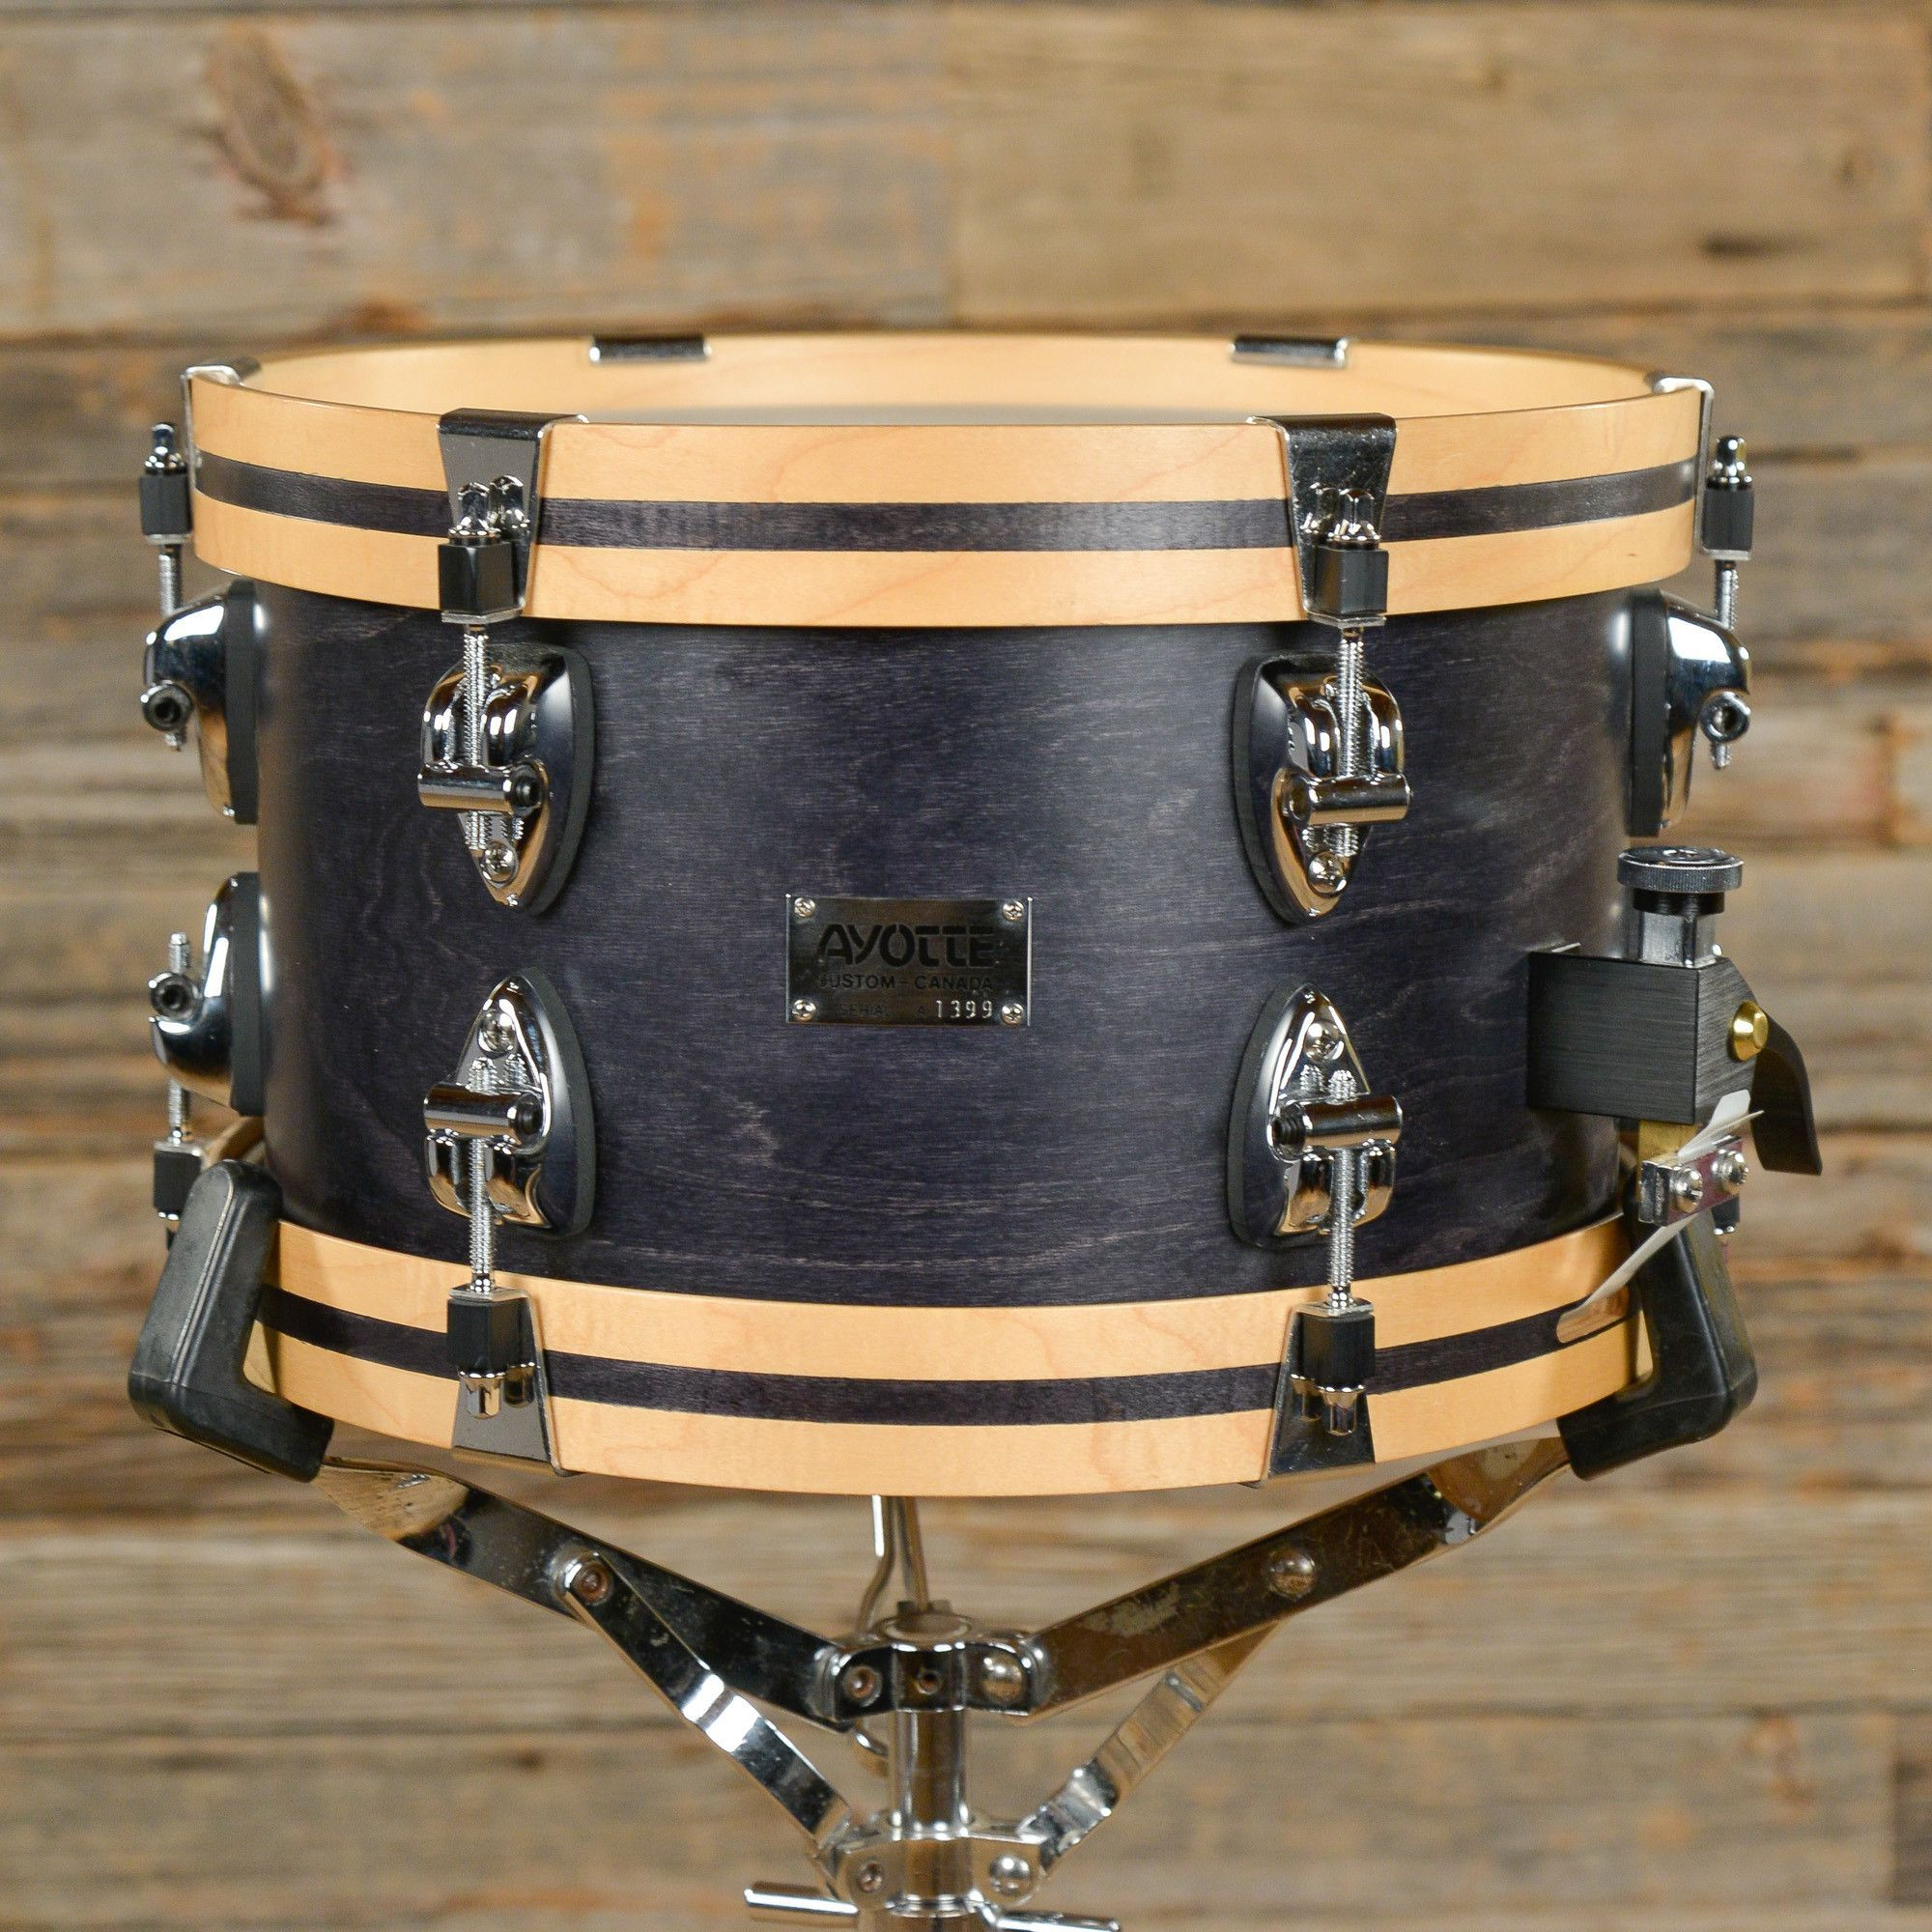 Ayotte 7x12 12 Ply Maple Snare Drum w/Wood Hoops Black Stain 90s ...